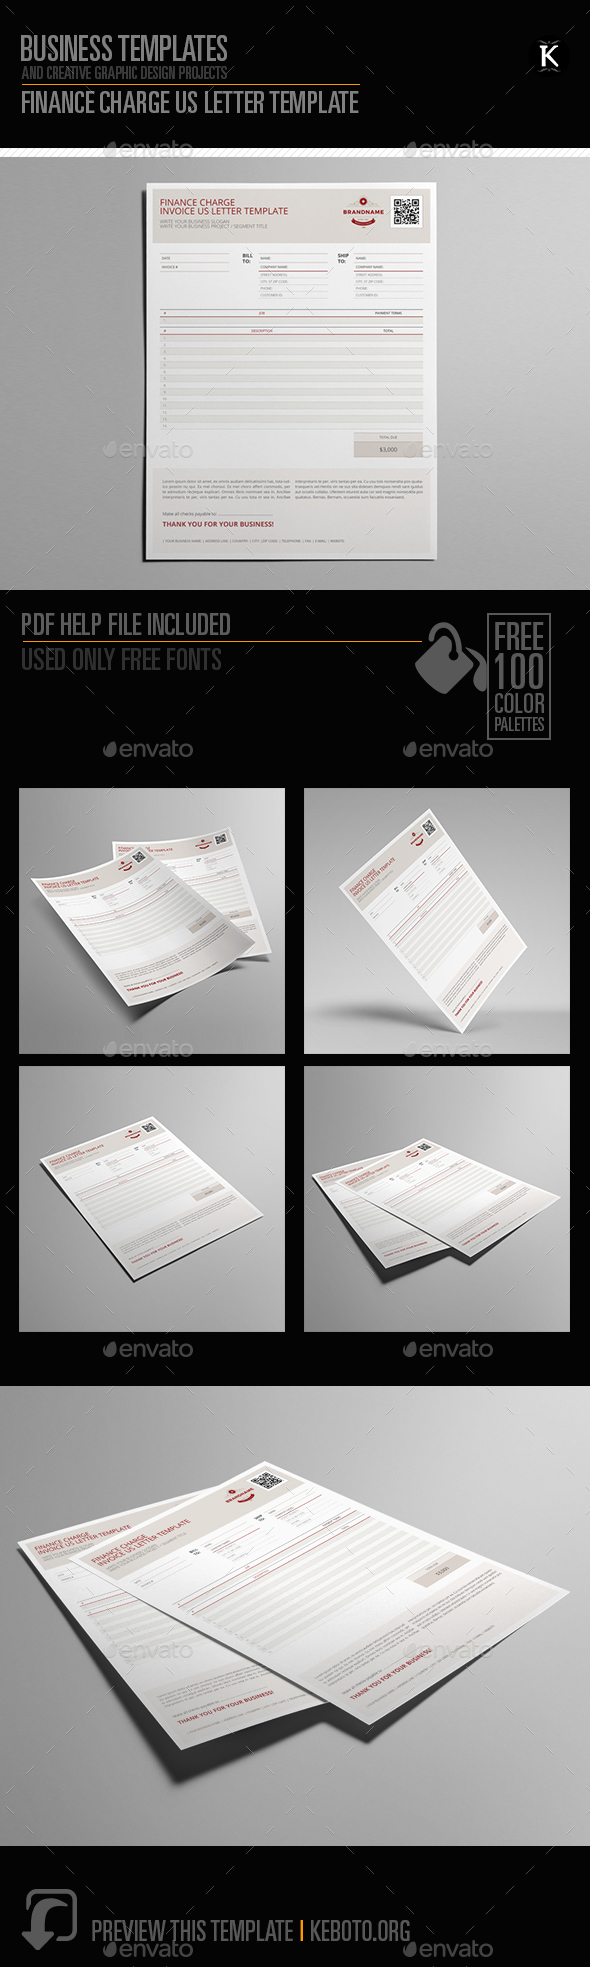 Finance Charge US Letter Template - Miscellaneous Print Templates